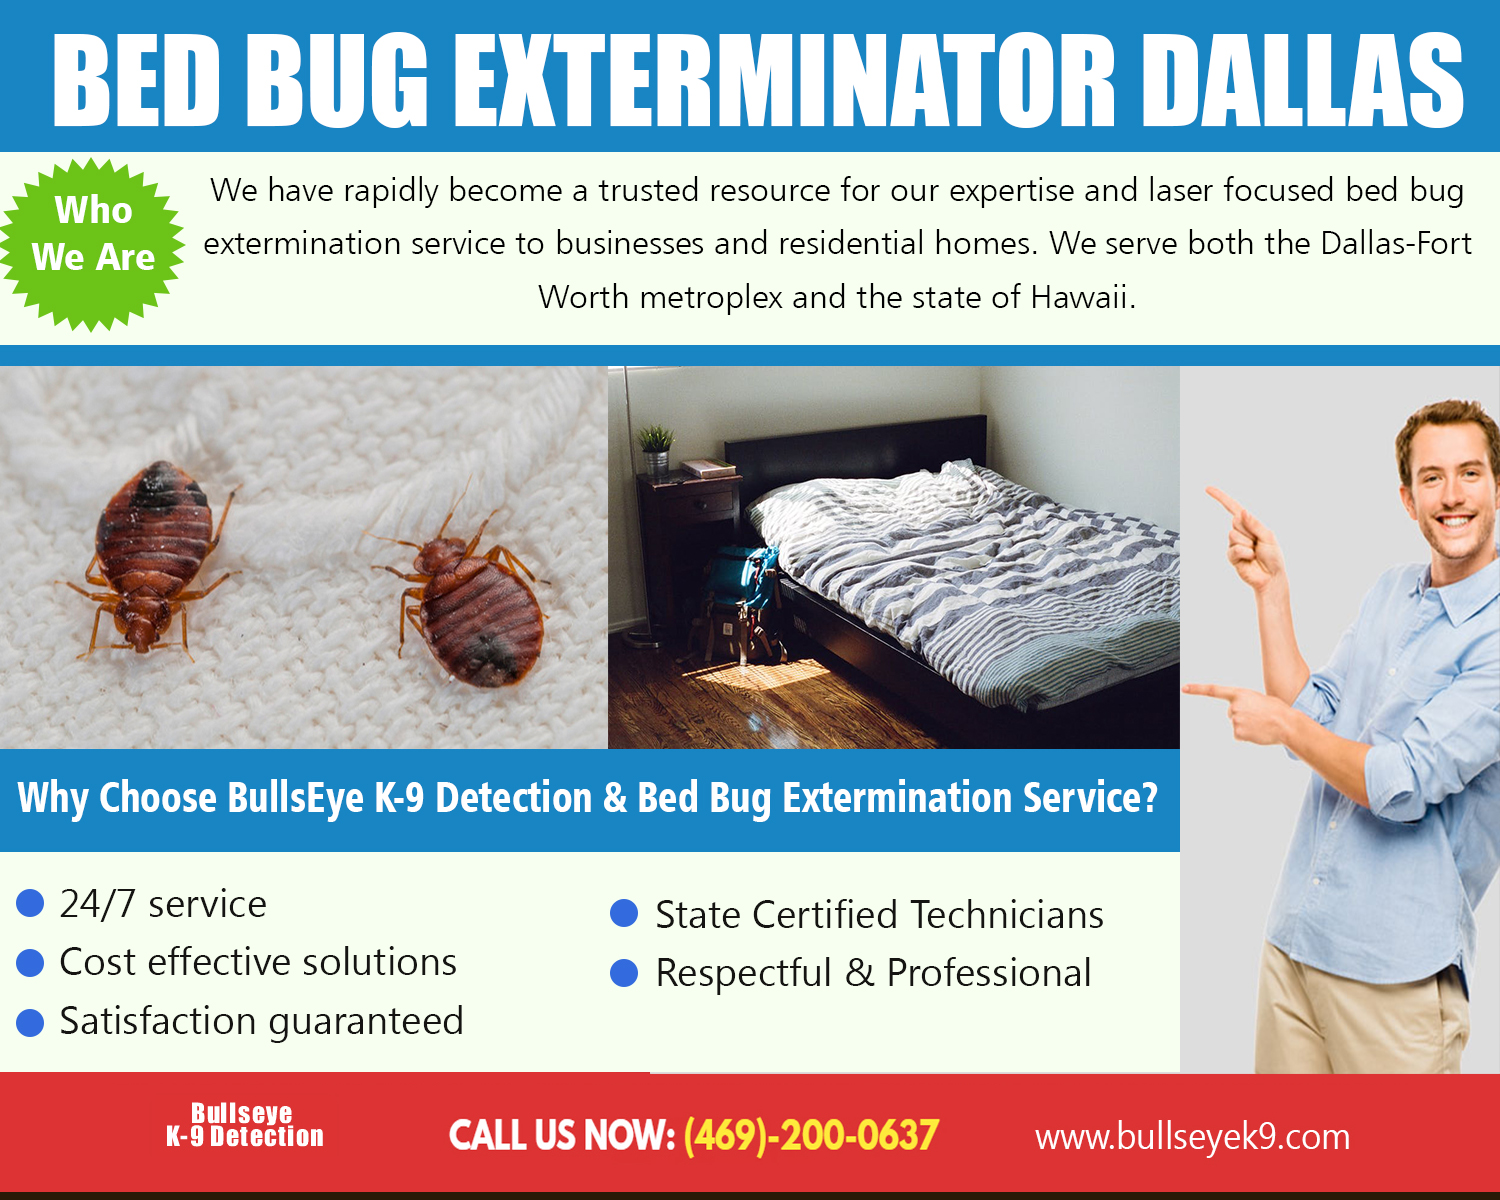 Bed Bug Exterminator Dallas Identify And Eliminate Those Pests